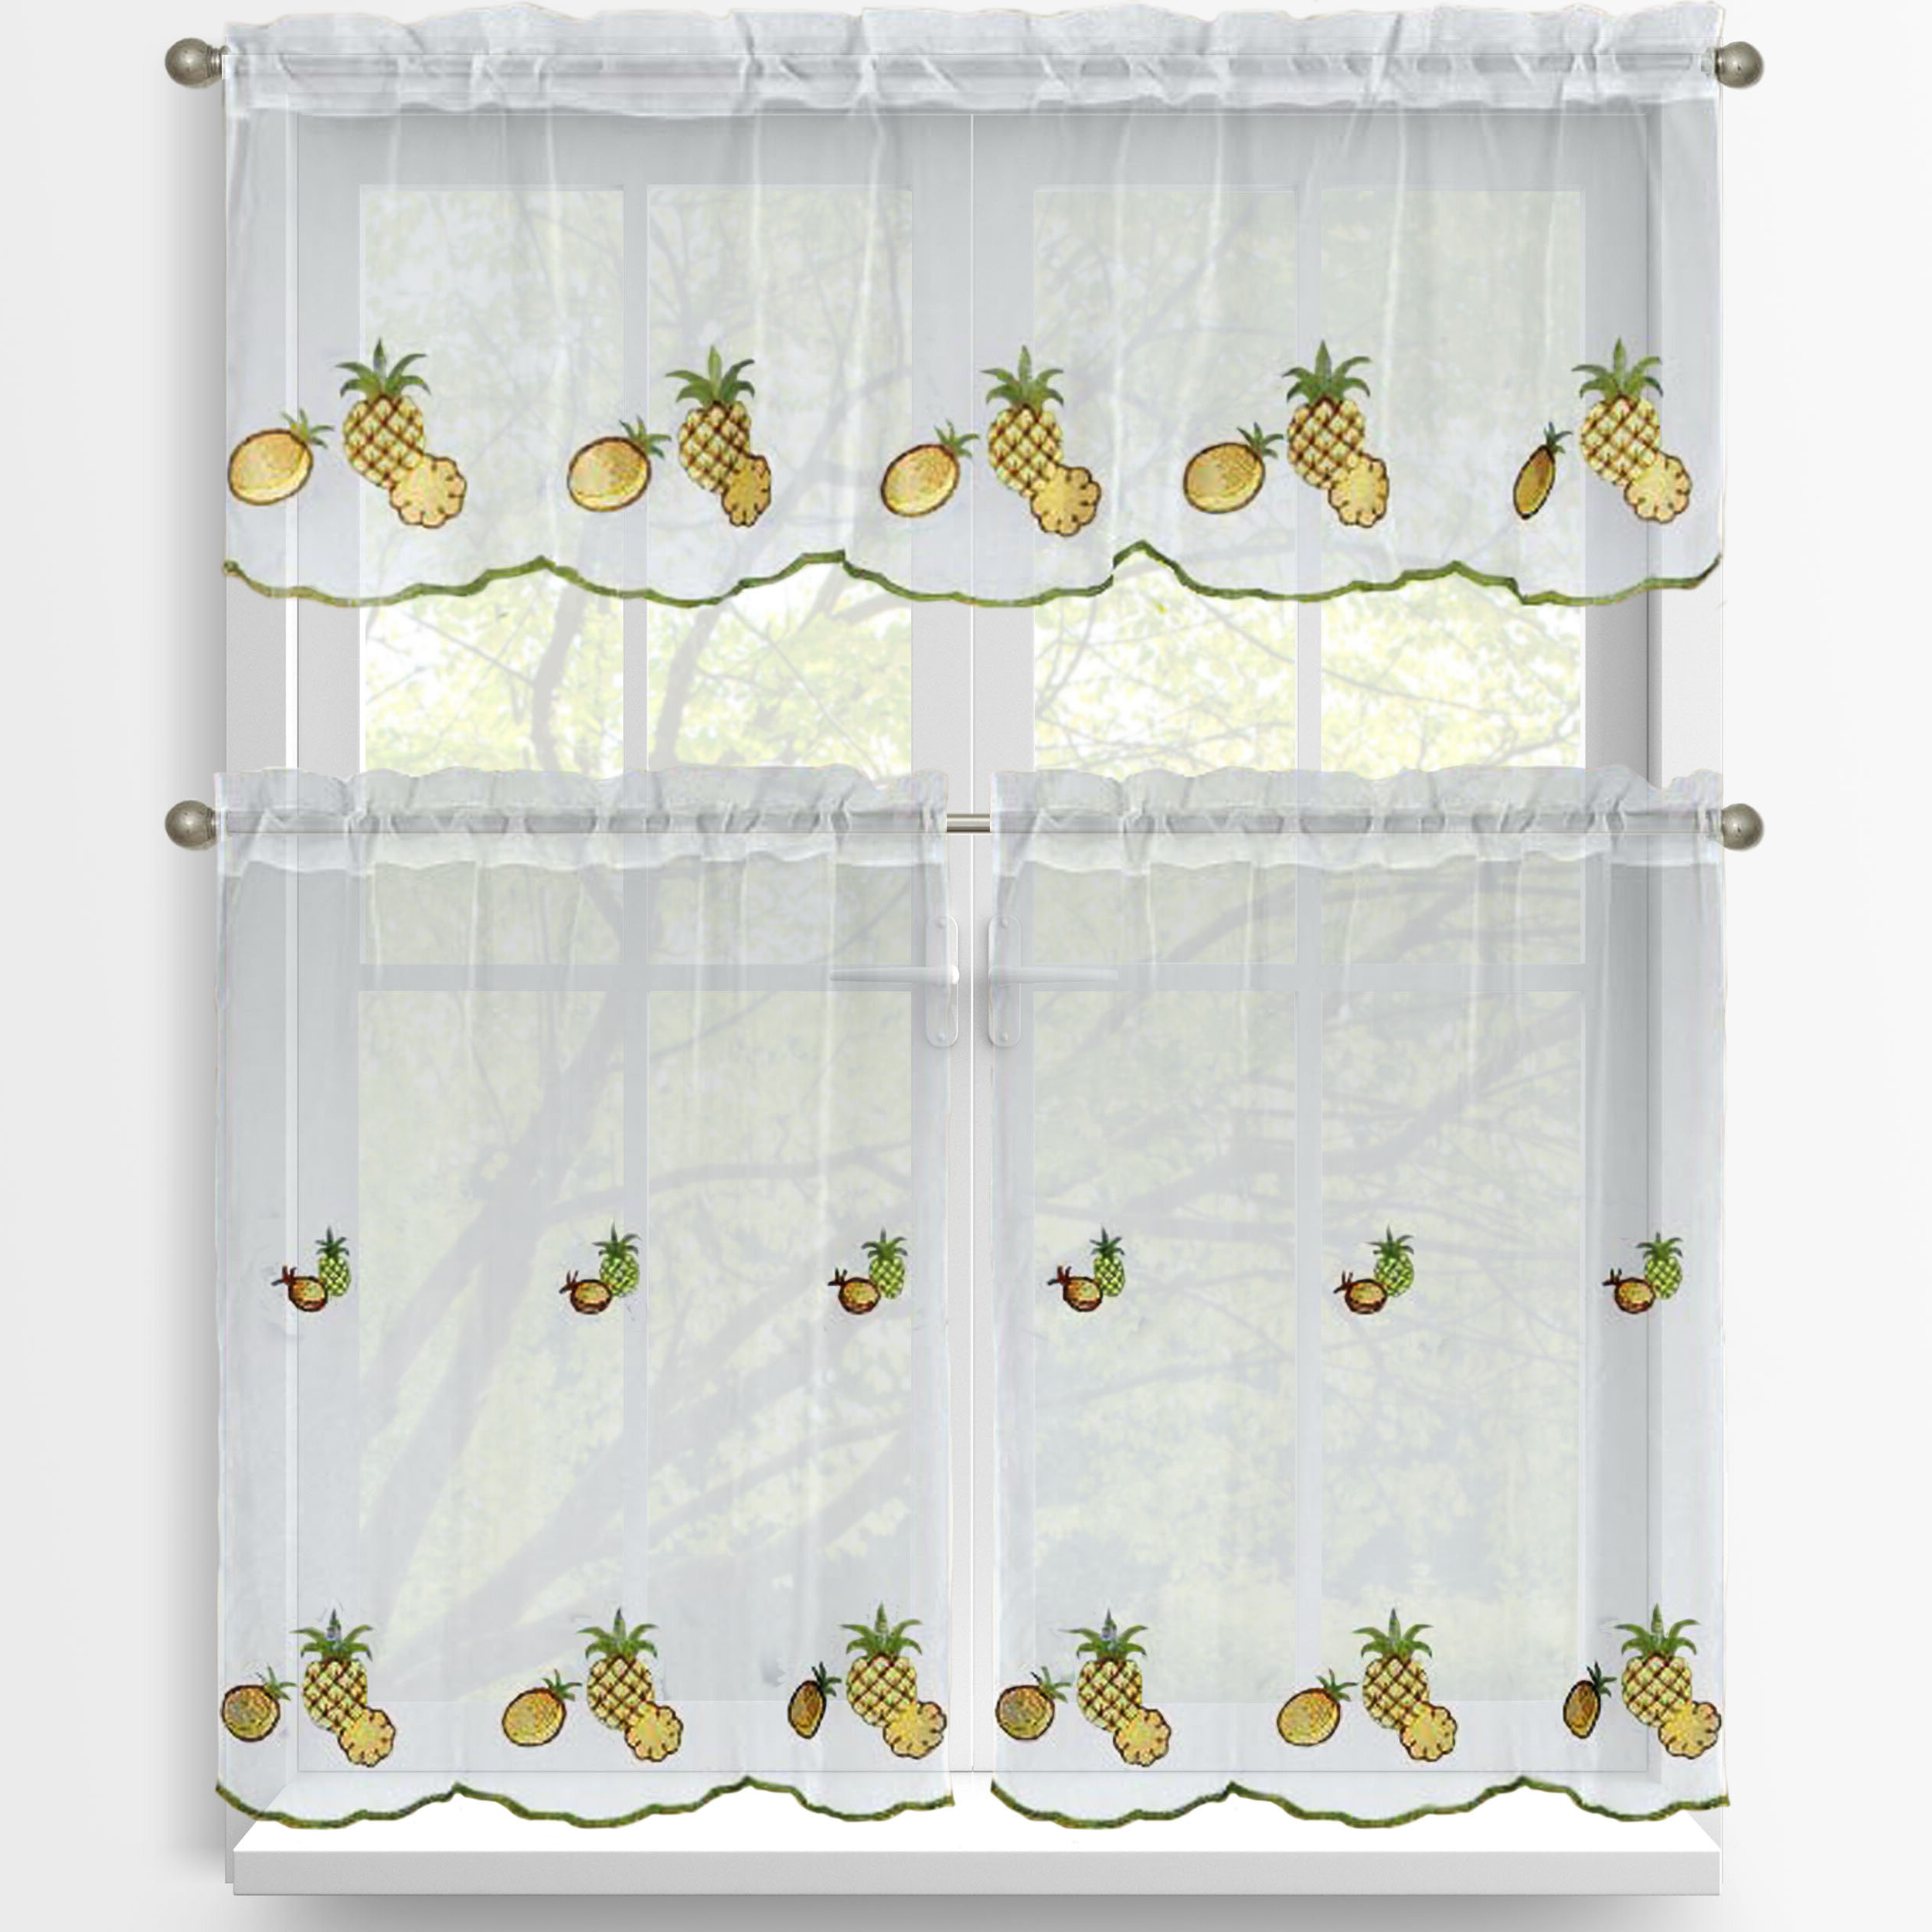 Window Curtain Tier And Valance Sets With Favorite Pineapple 3 Piece Embroidered Kitchen Tier And Valance Set (View 16 of 20)